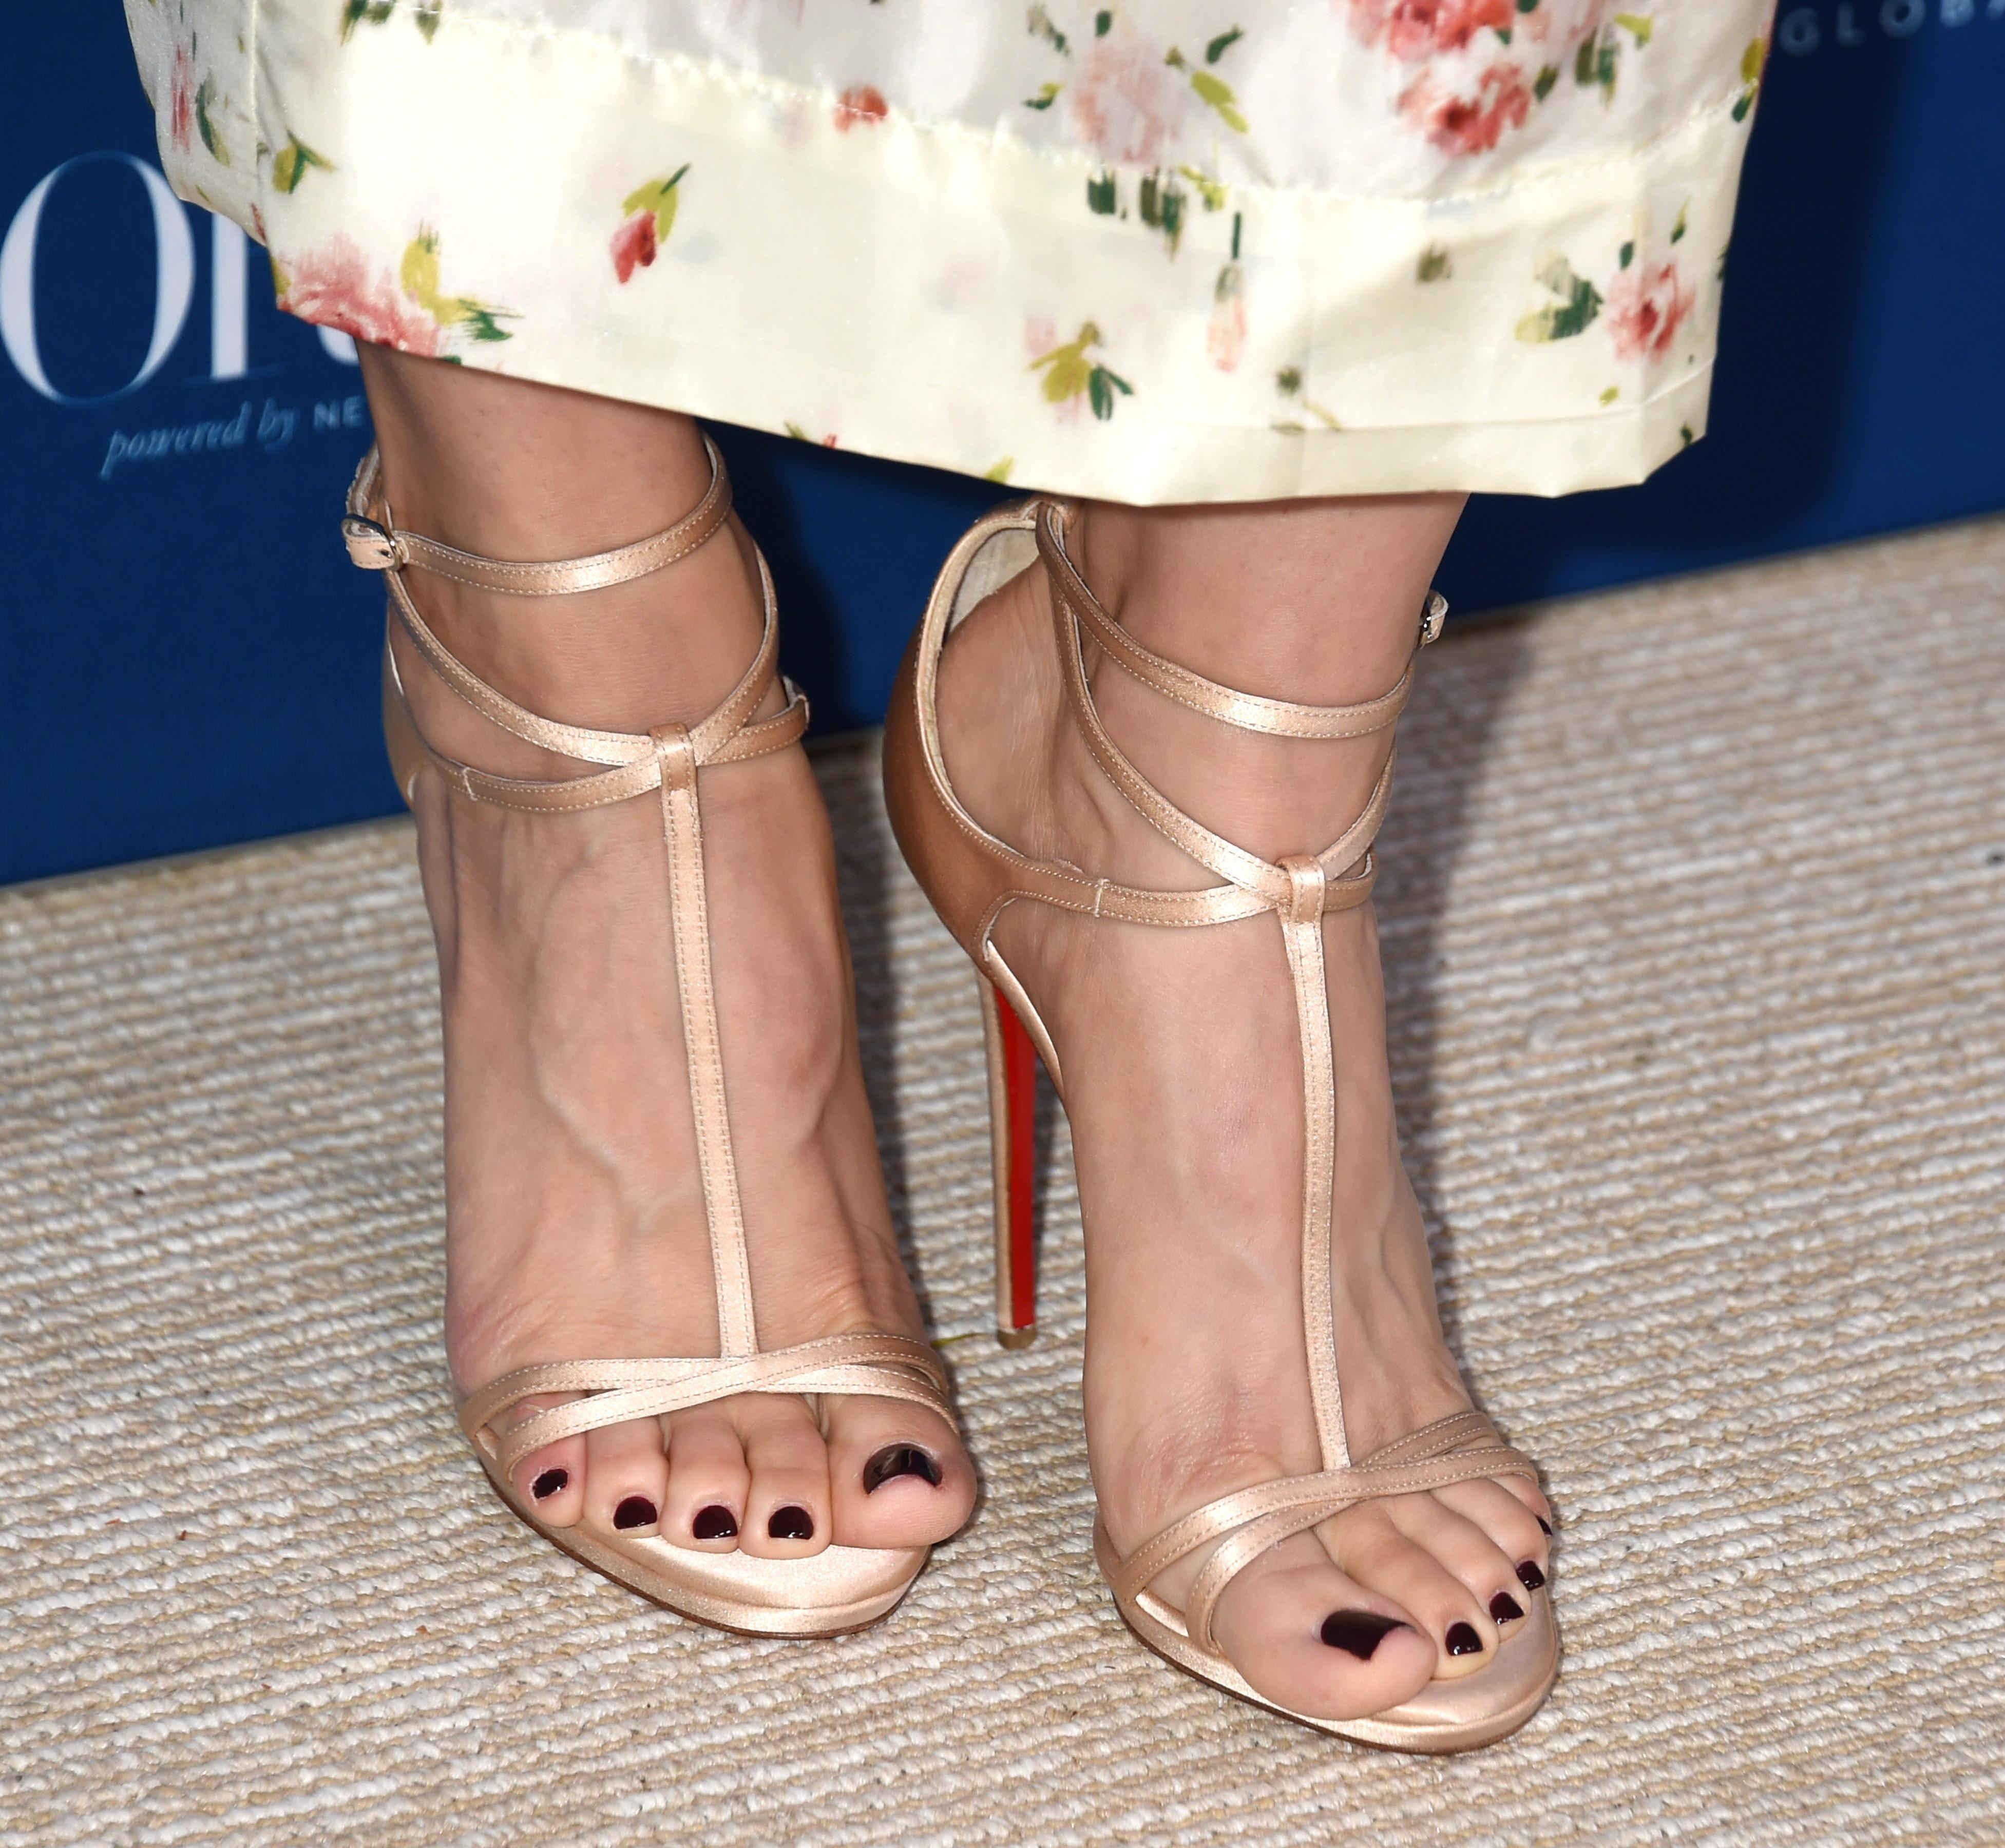 Alison Brie Beautiful Feet Image